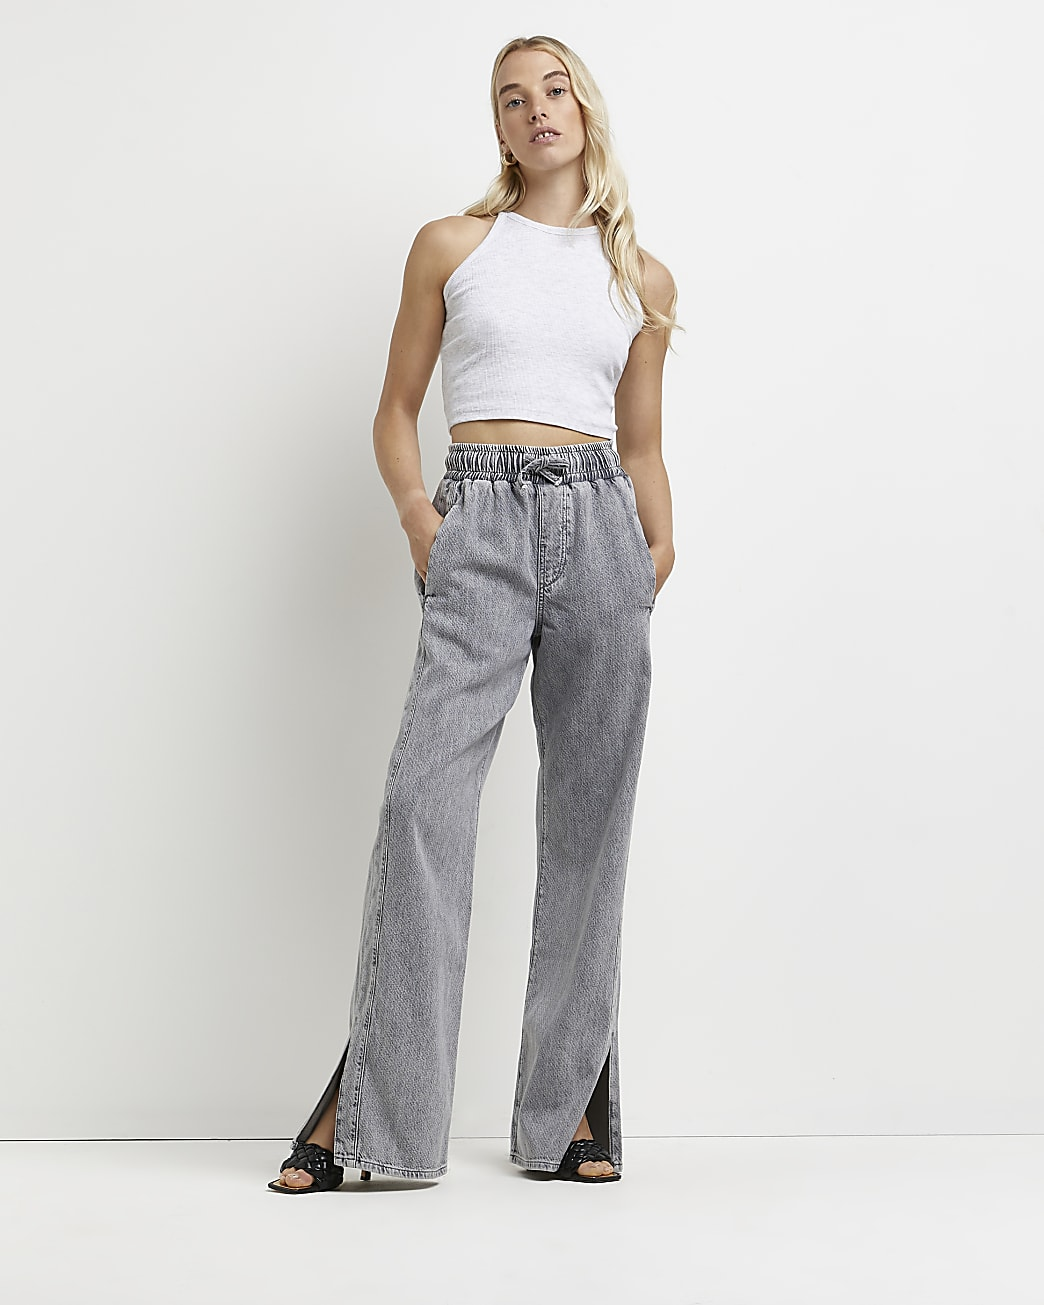 Grey high waisted flared jeans